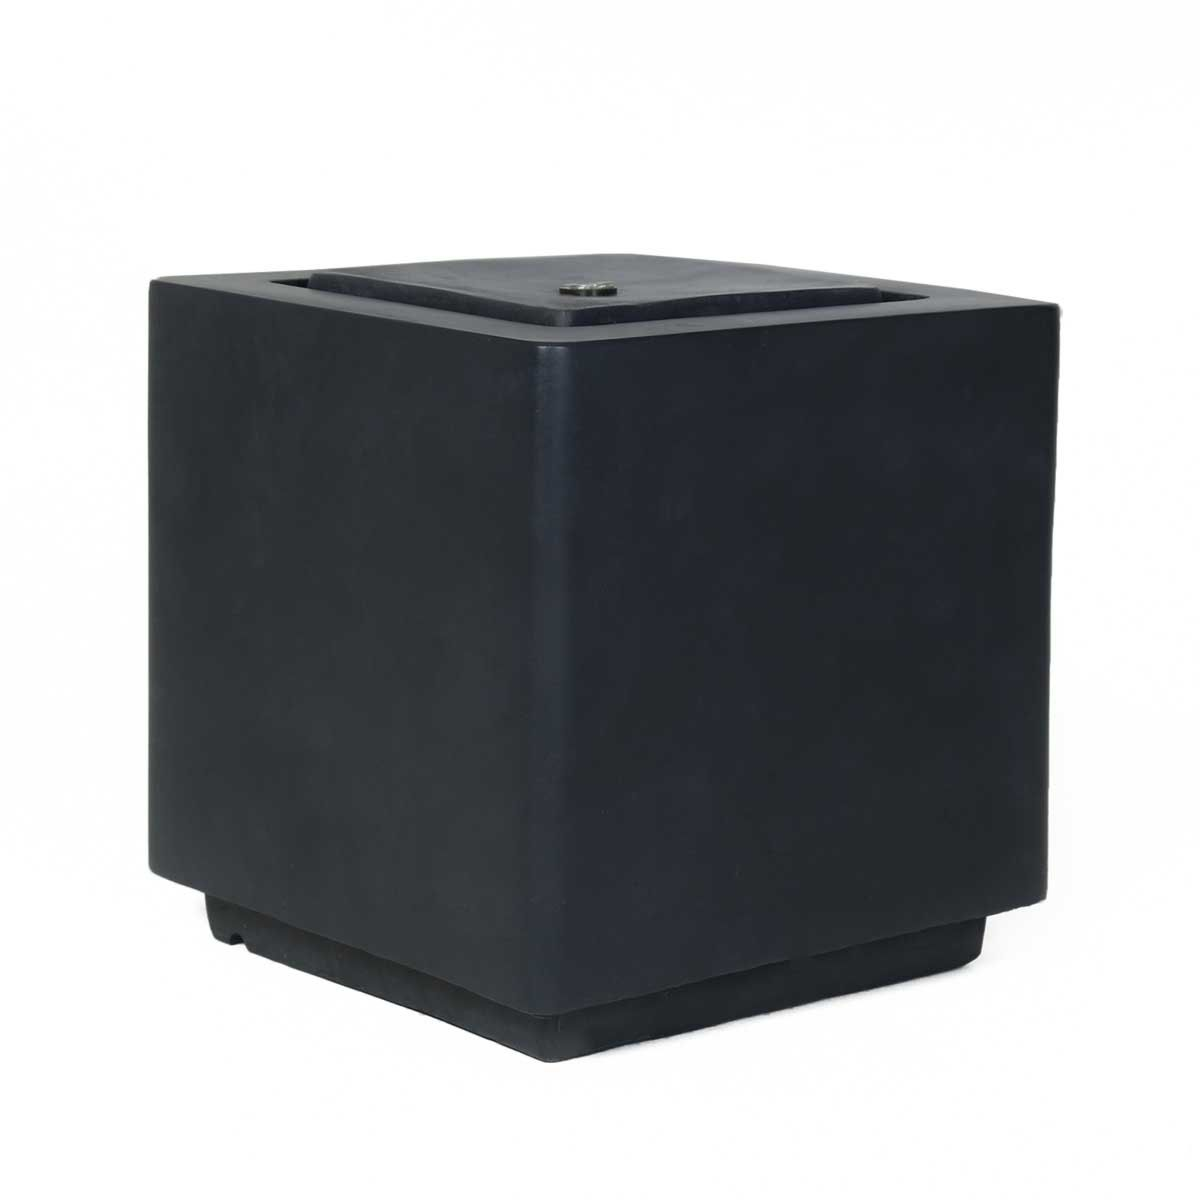 Charles Bentley Granite Cube Water Feature with LED lights